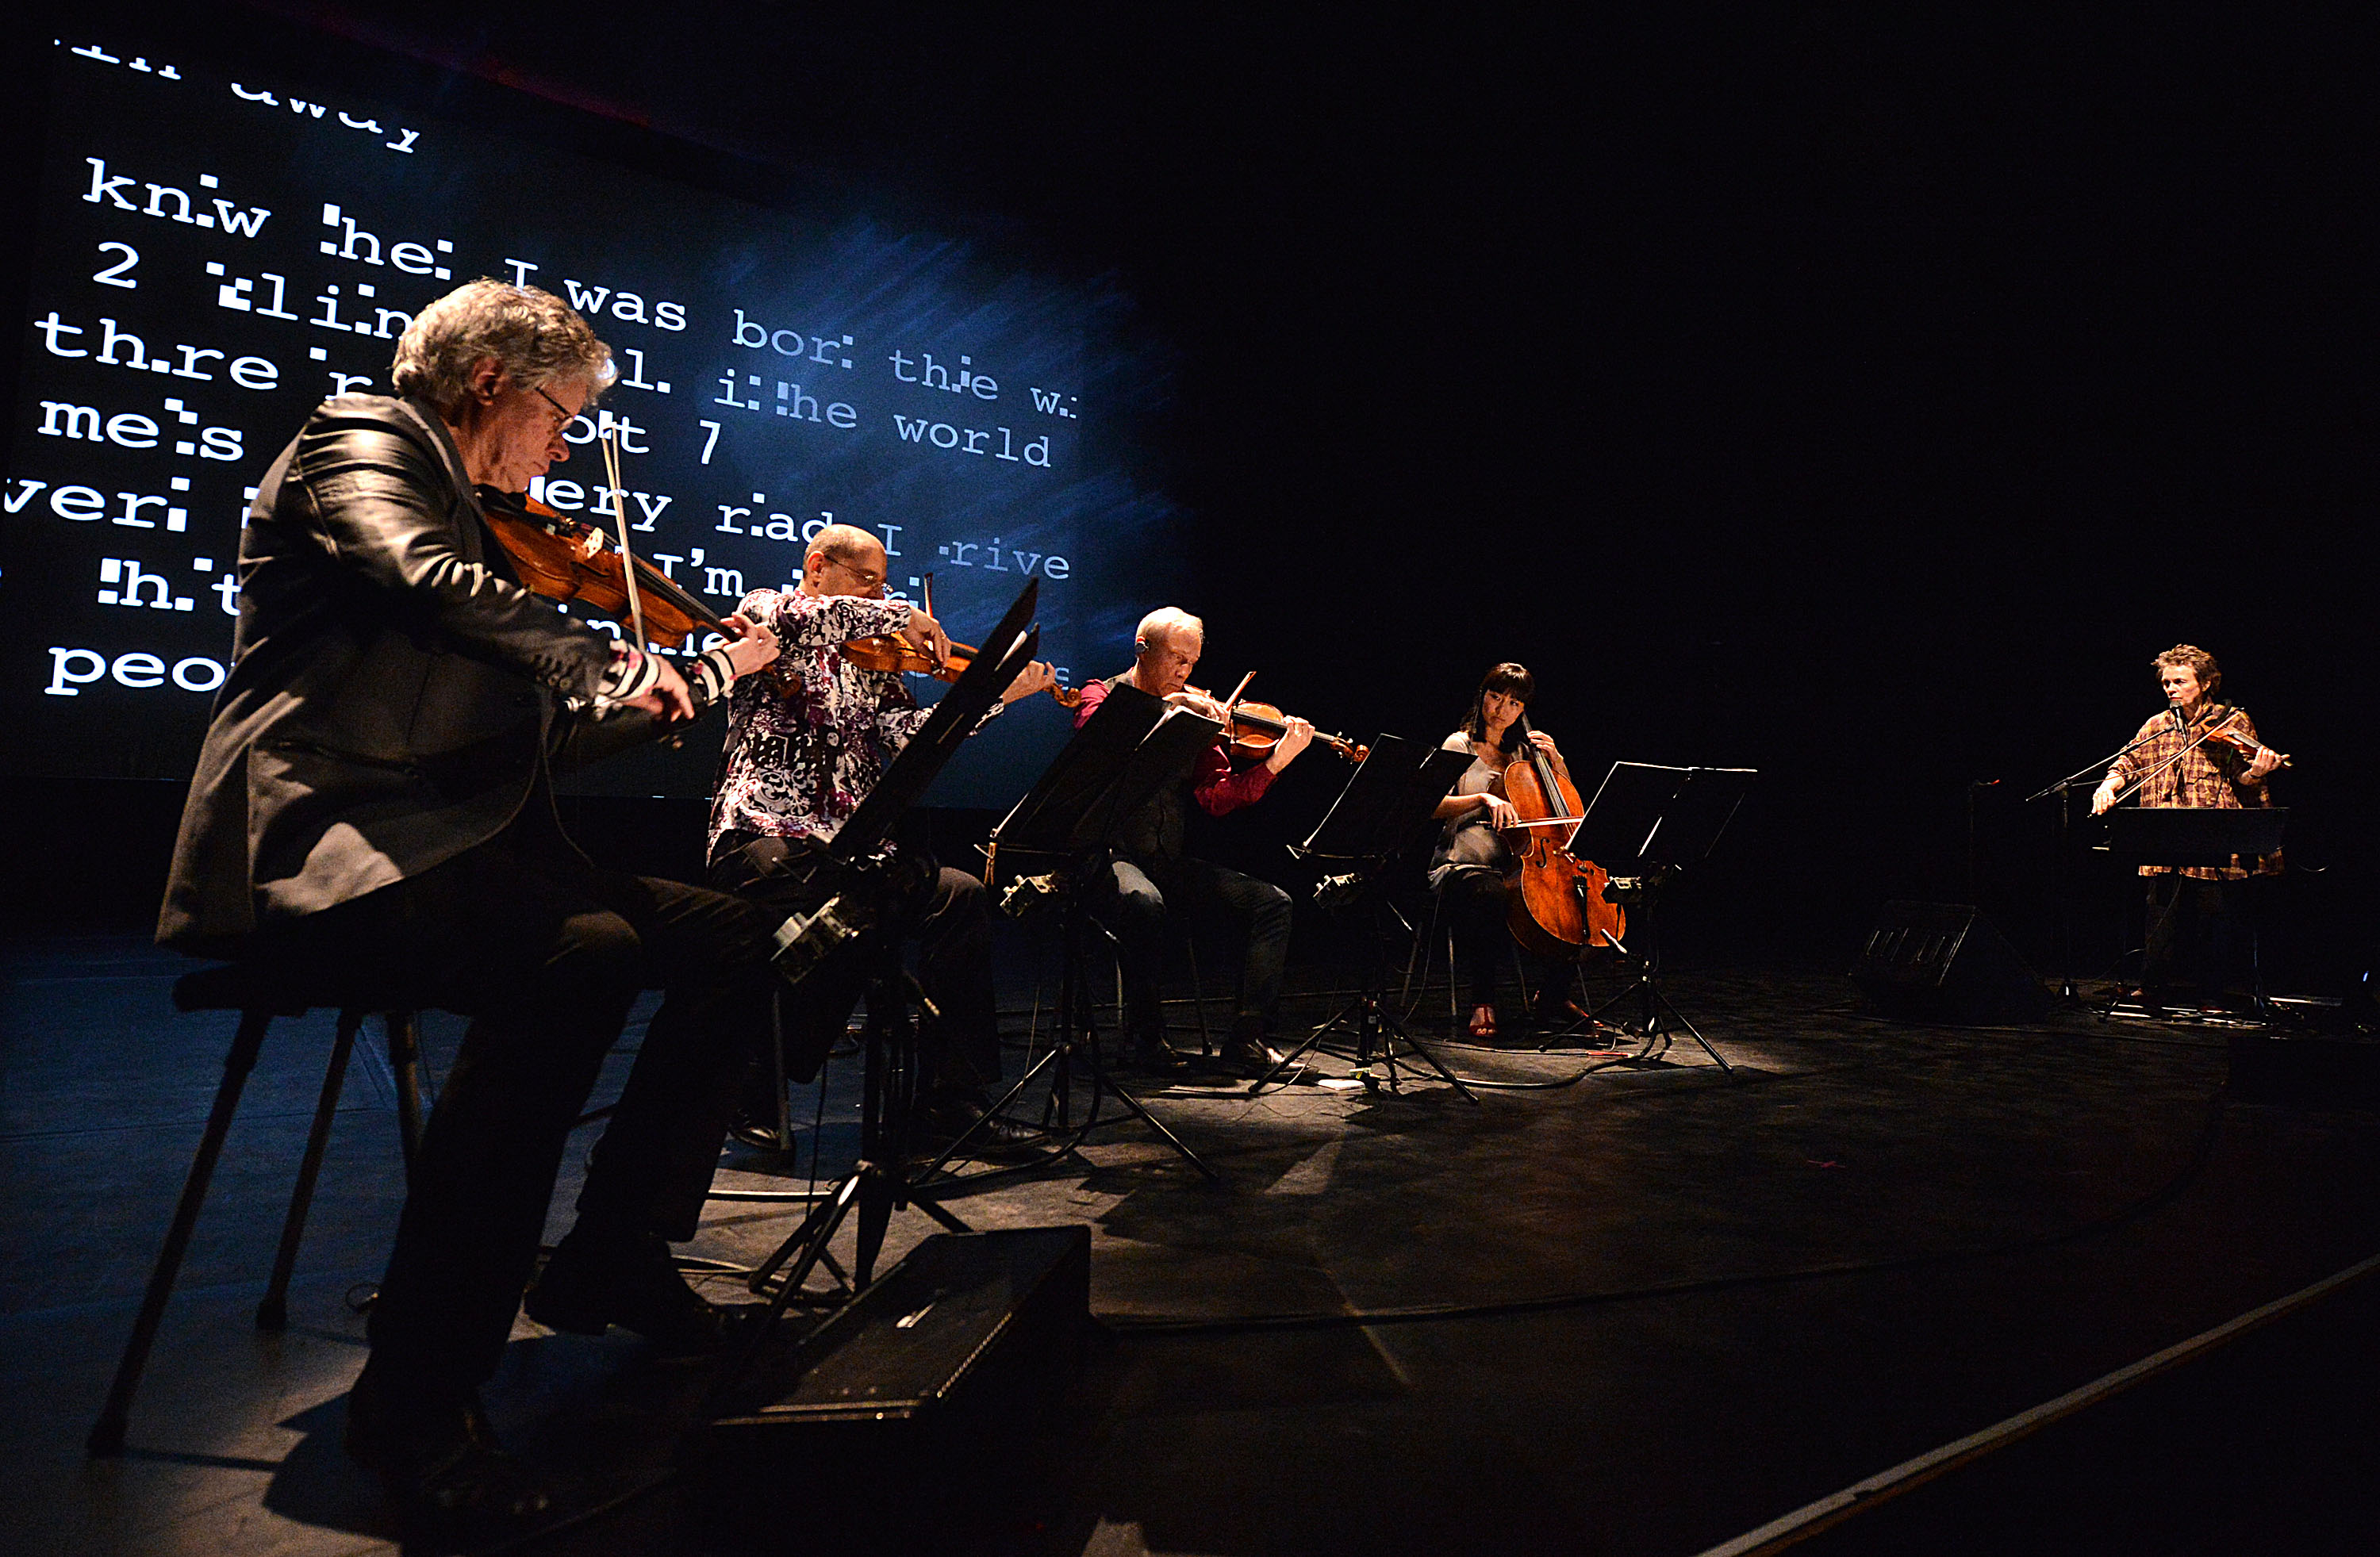 kronos quartet and laurie anderson performing on stage